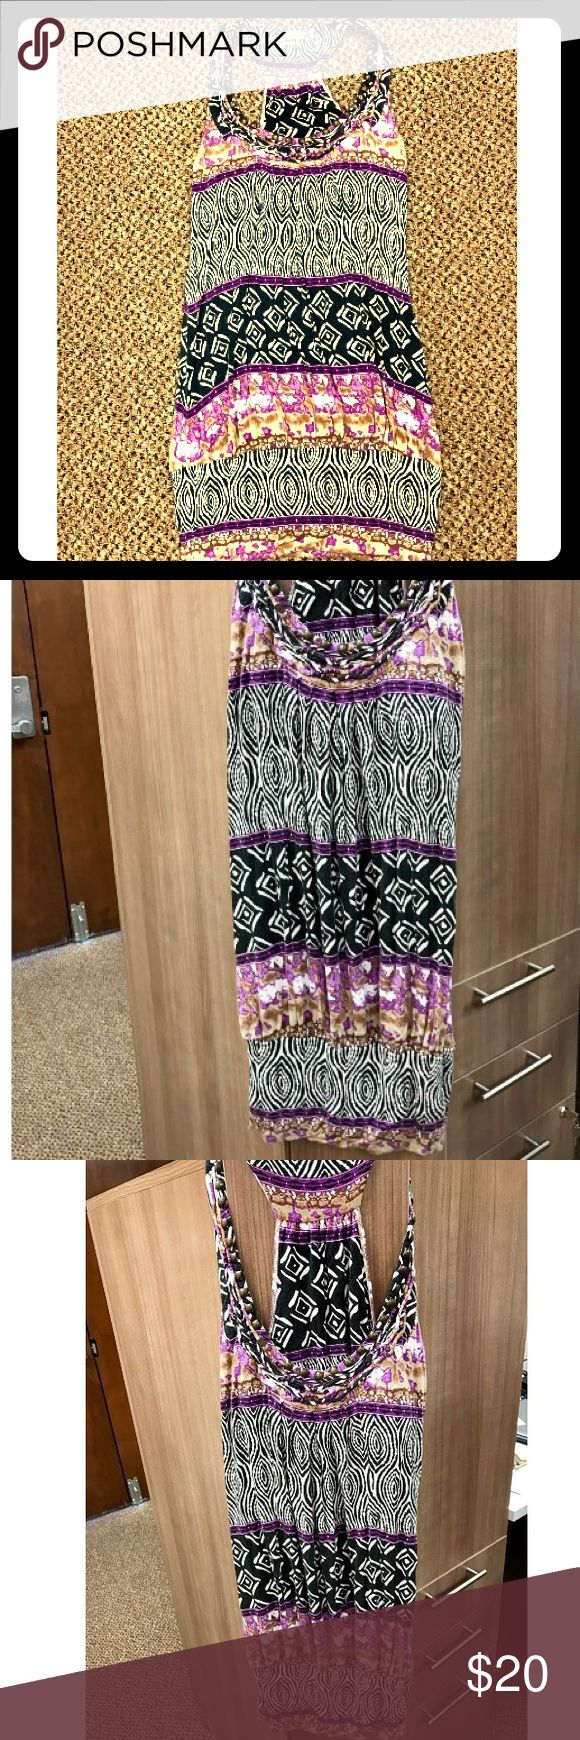 Halter Guess Dress Size Medium Beautiful, lovingly worn multicolored Guess dress! This dress has faded some, but is still absolutely gorgeous, stylish and flattering. Around the collar there are wooden beads and the dress has an almost tribal feel to it. In addition, the bottom is slightly fitted to give the dress a sexy look. This dress is perfect for a night out on the town or for a dinner date! Guess Dresses